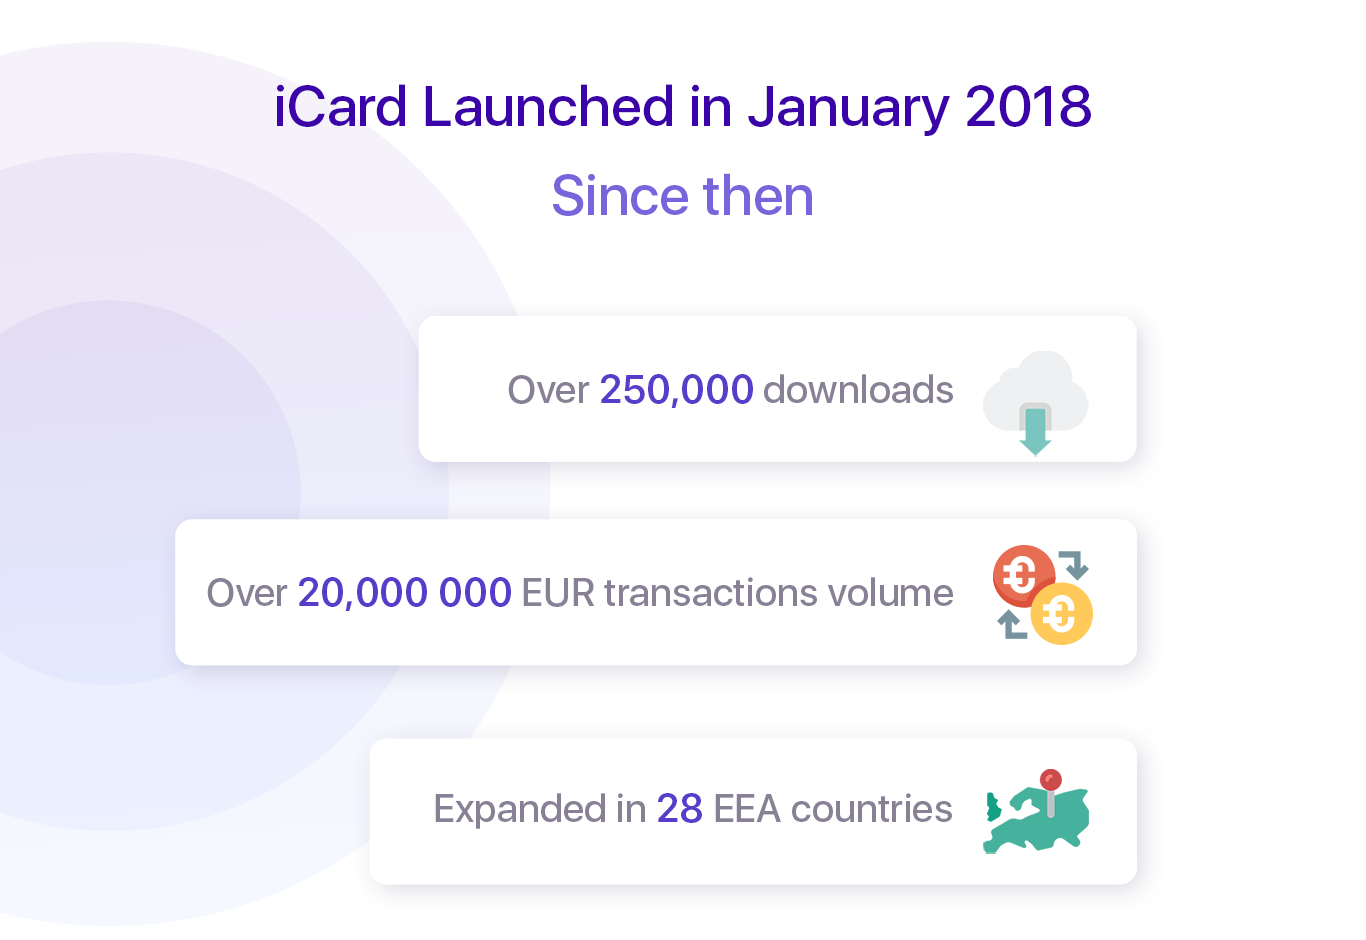 iCard year in review 2018 in numbers